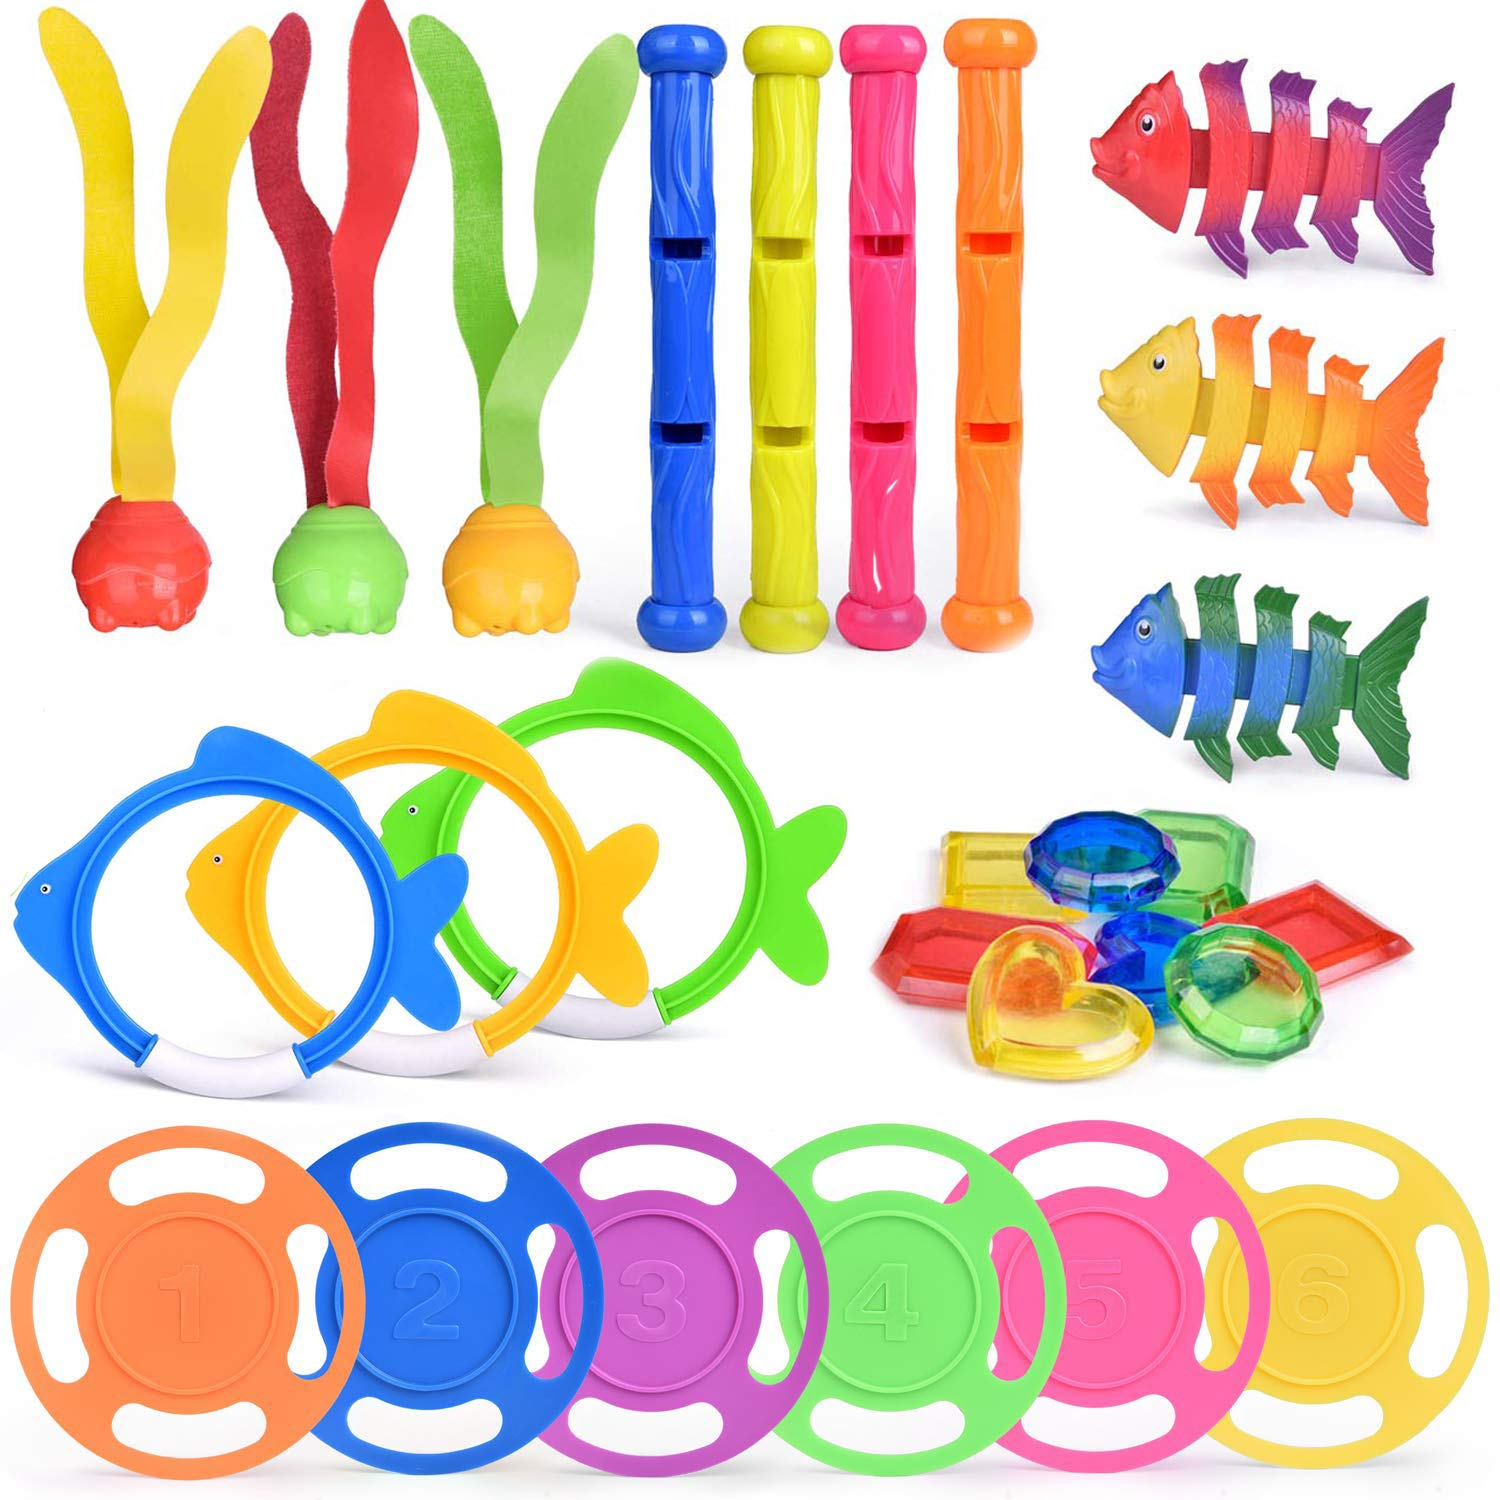 30 PCs Diving Pool Toys Underwater Swimming Pool Toys Set, Pool Party Favors for Kids by FUN LITTLE TOYS